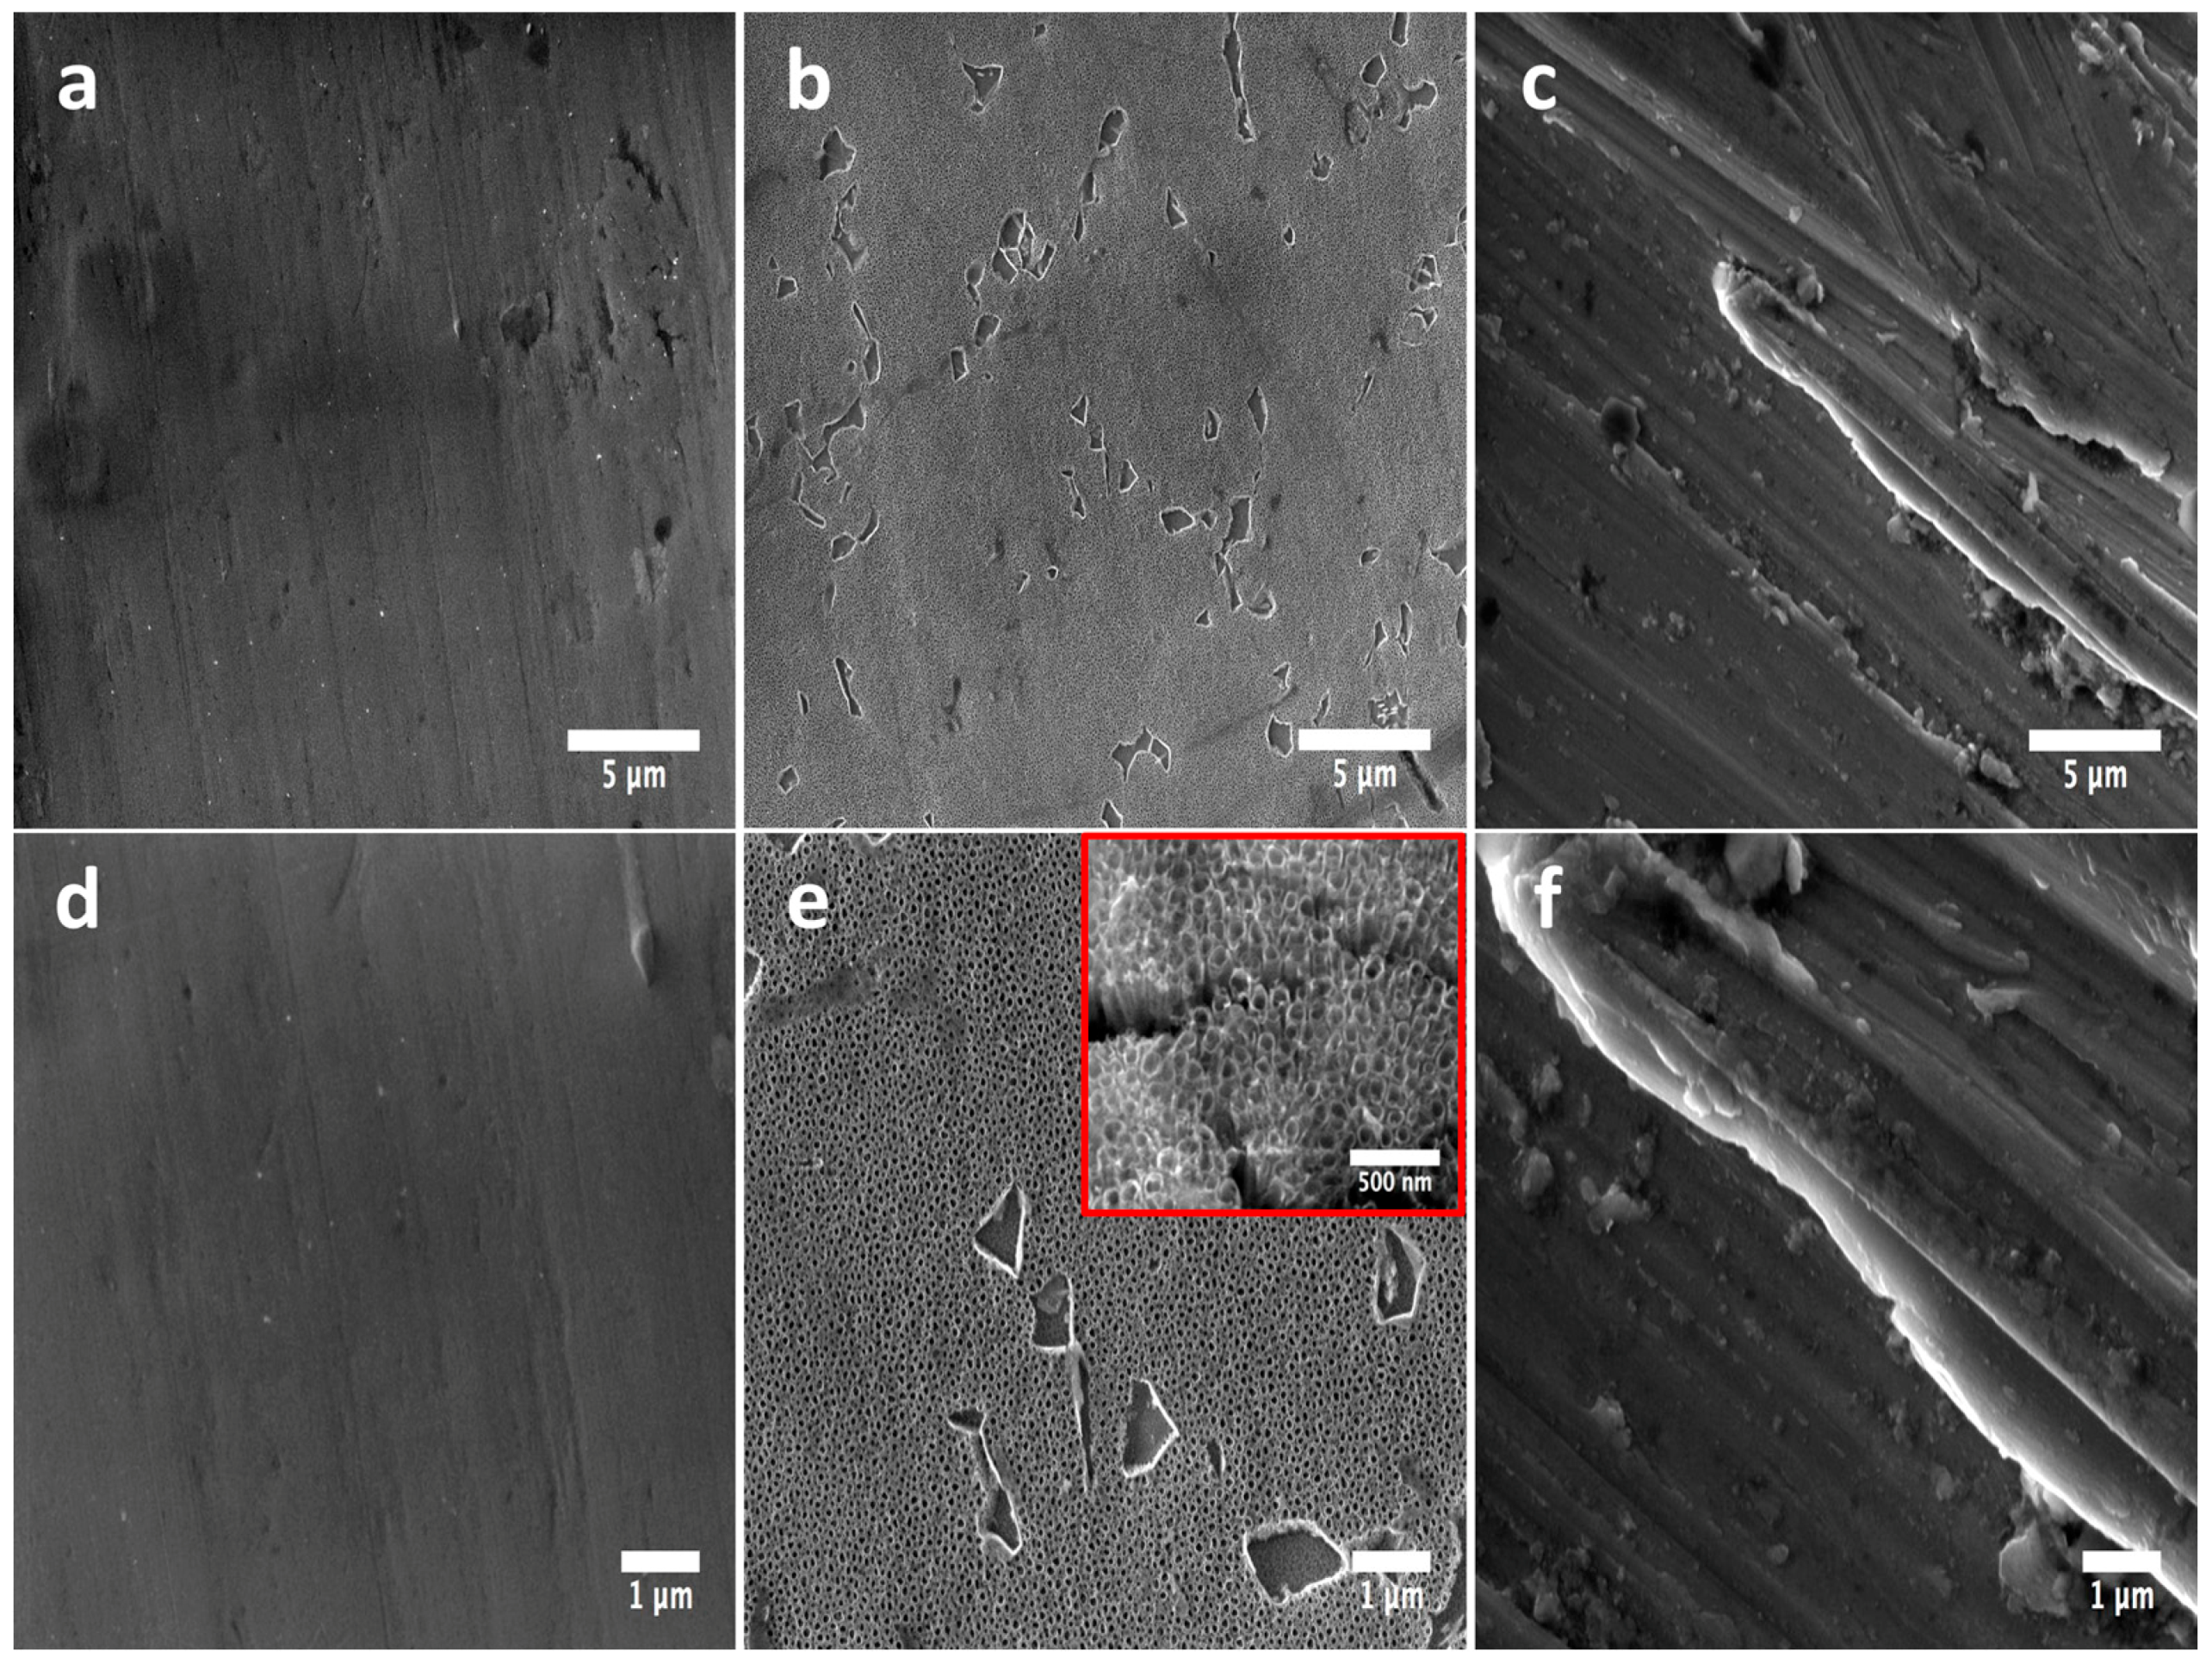 FE-SEM micrographs illustrating the surface morphology of the experimental materials.